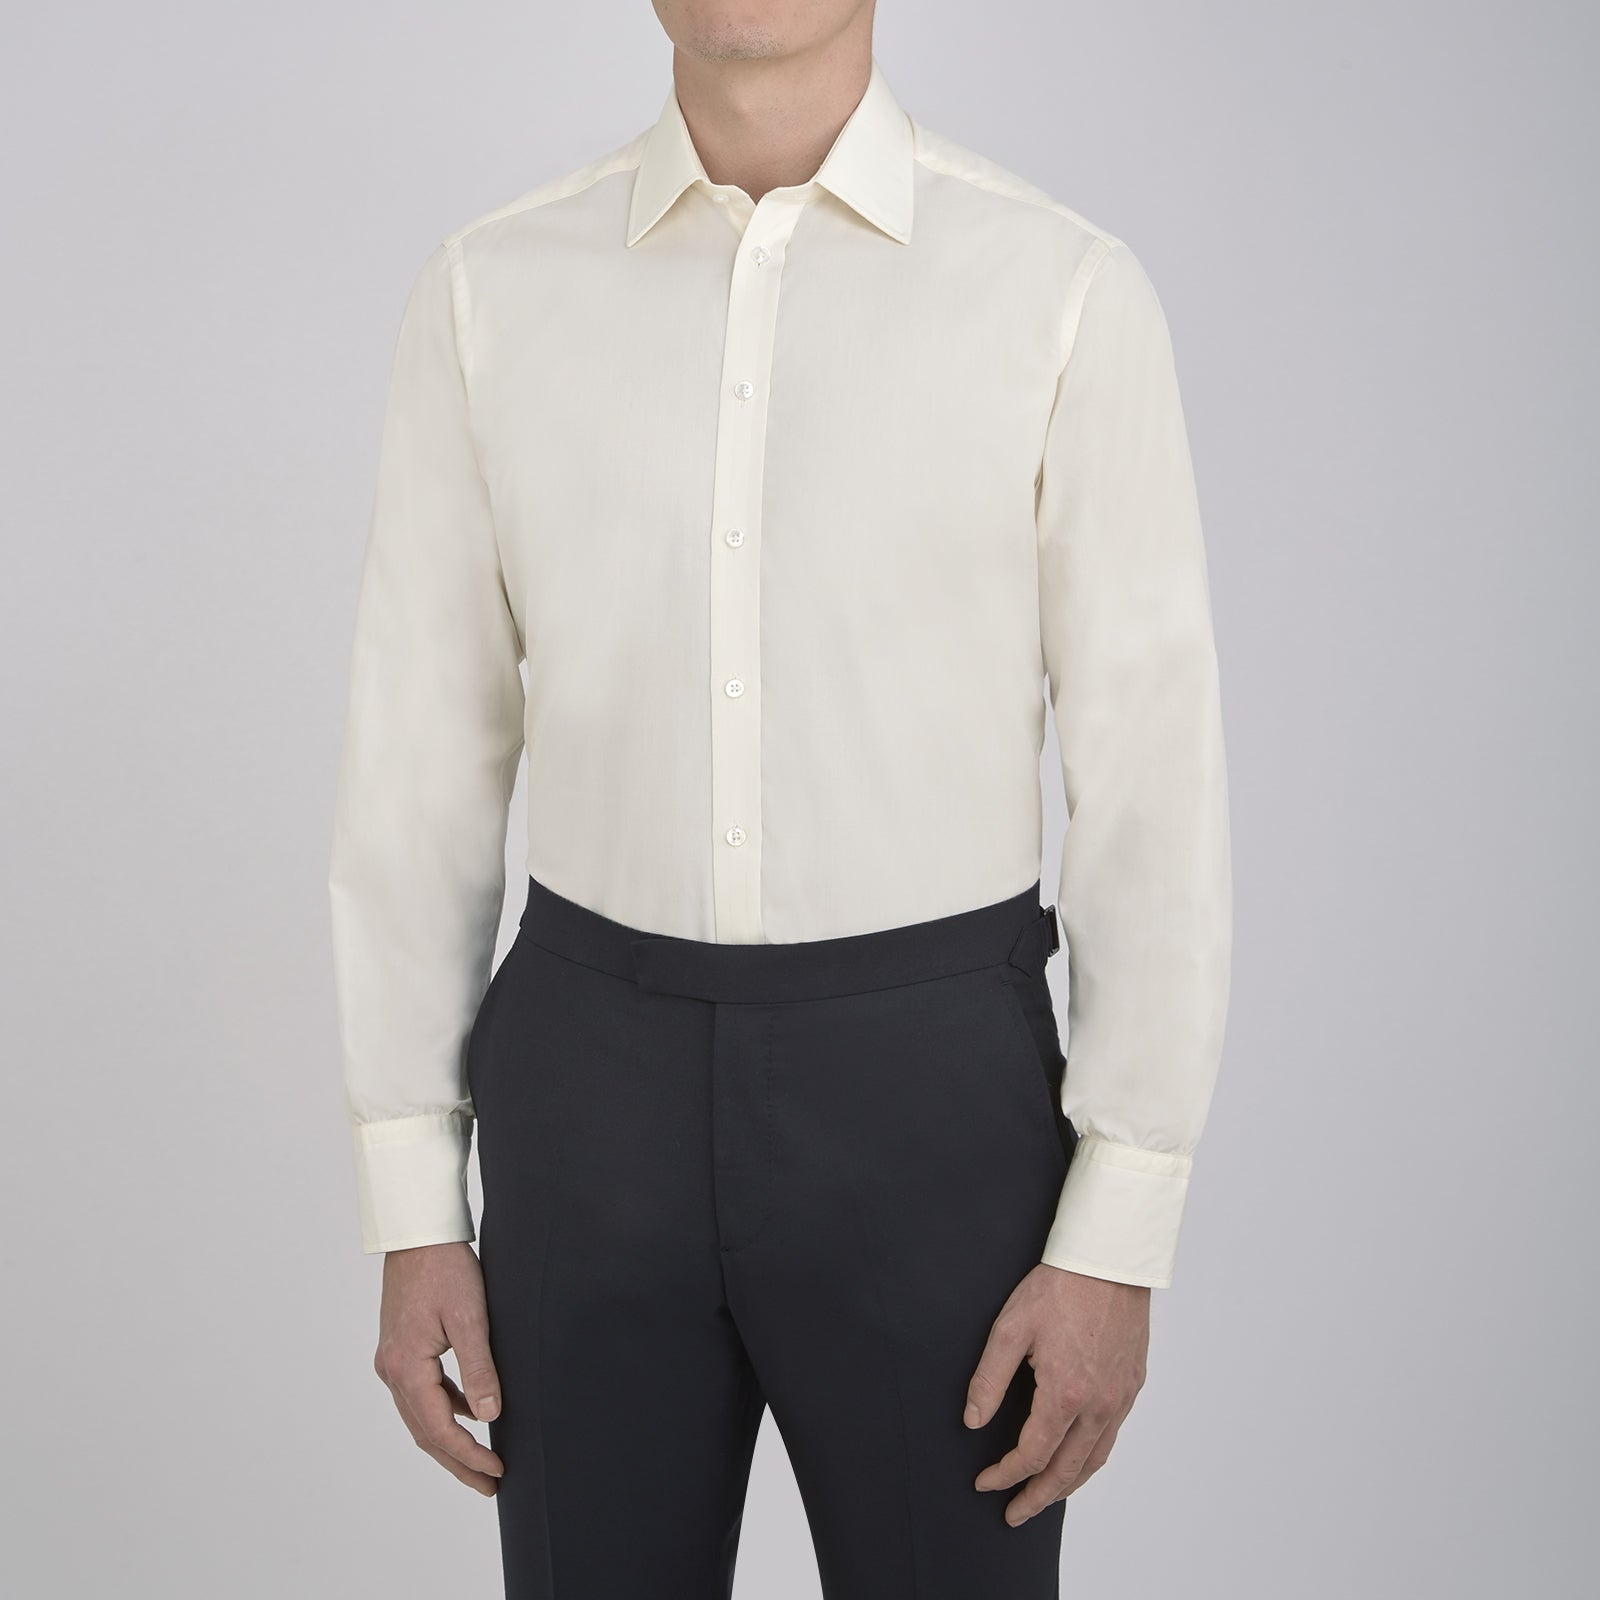 Cream Cotton Shirt with T&A Collar and 3-Button Cuffs